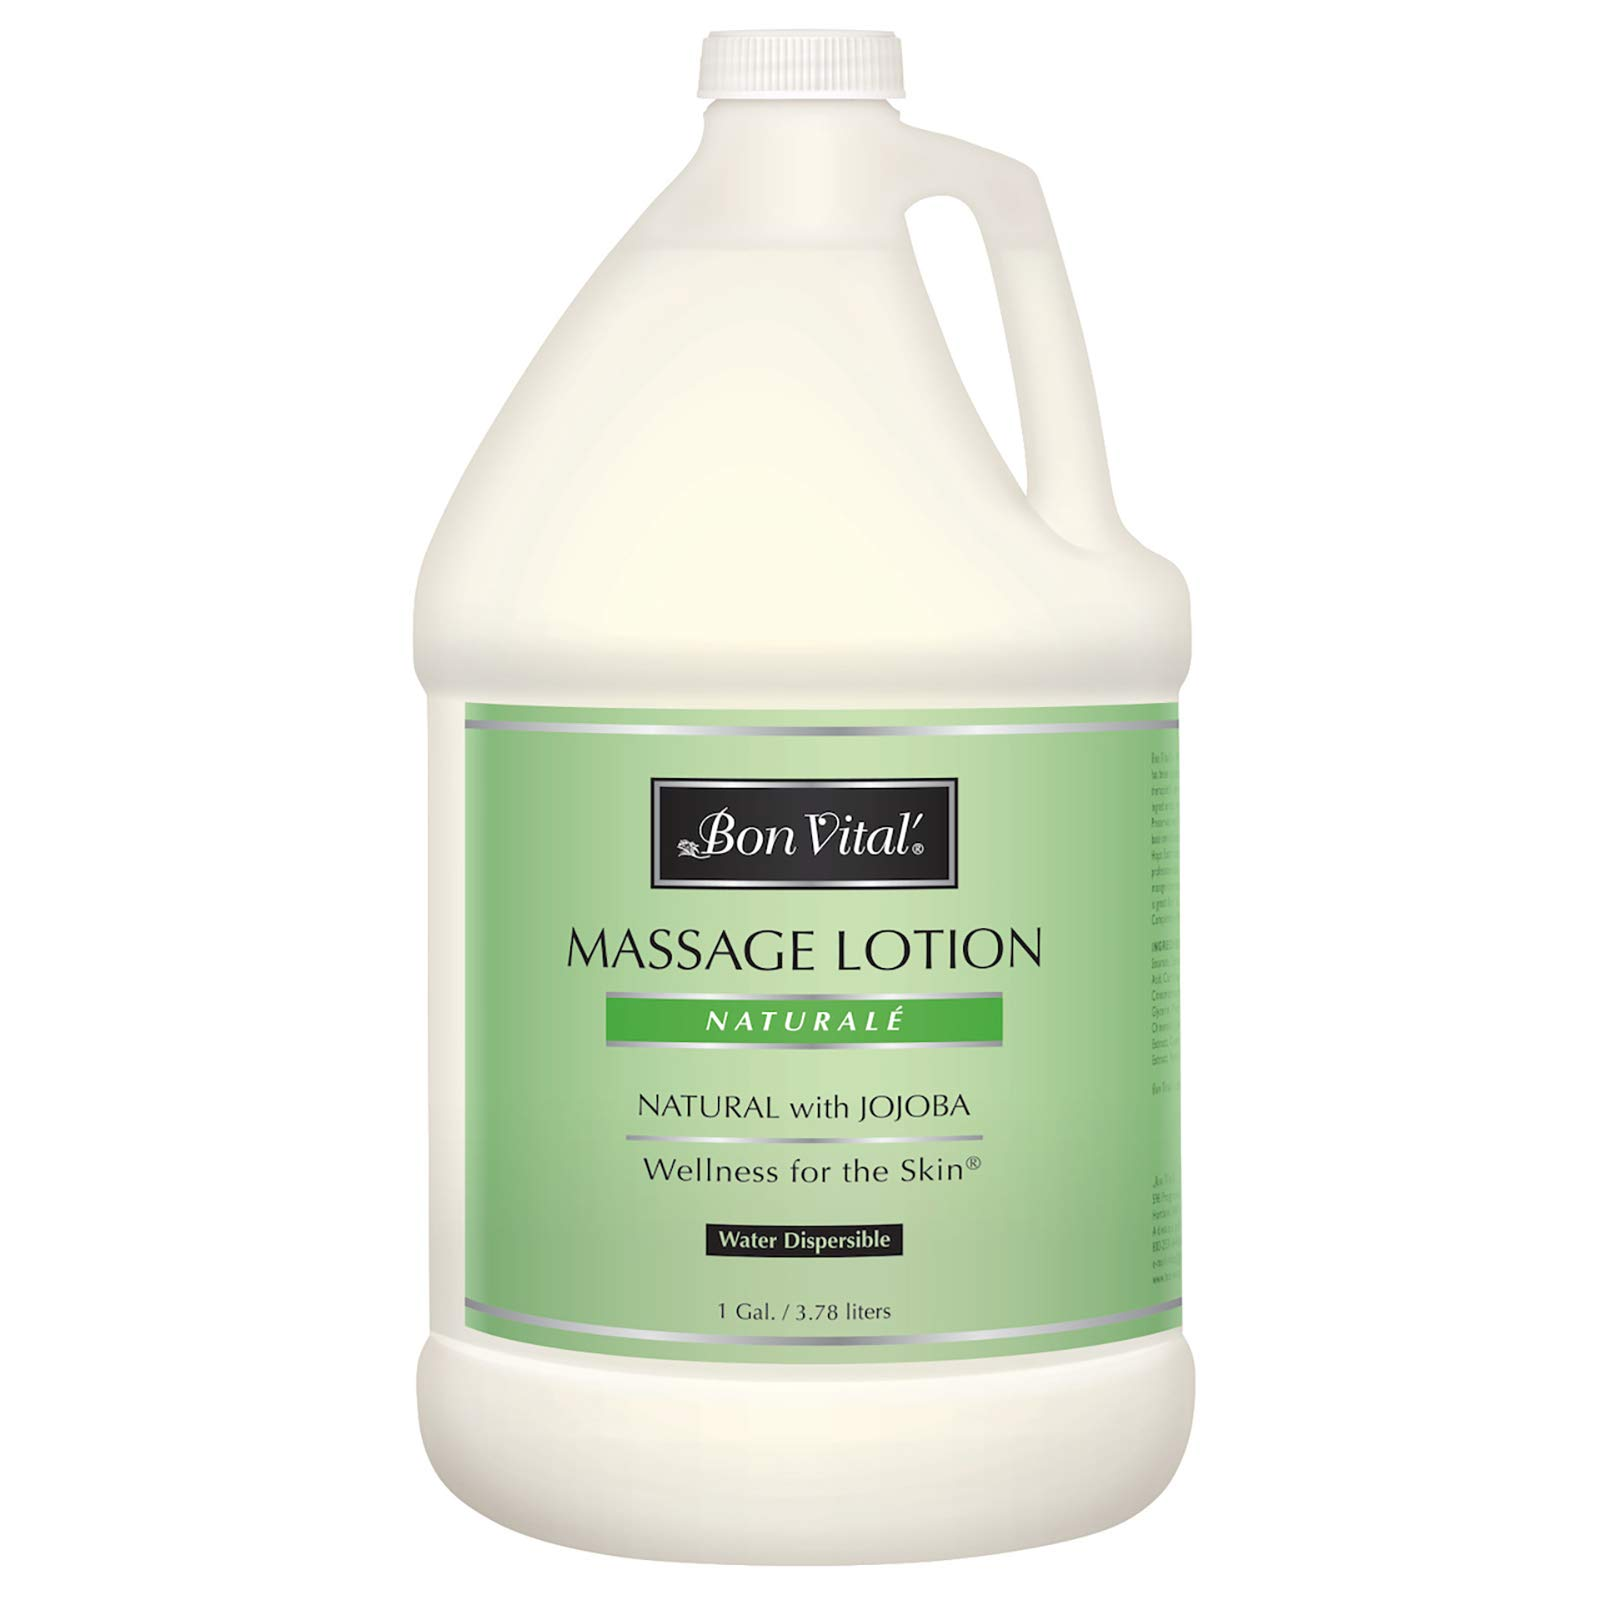 Bon Vital' Naturale Massage Lotion Made with Natural Ingredients for an Earth-Friendly & Relaxing Massage, All Natural Moisturizer, Relieves Muscle Soreness and Increases Circulation, 1 Gallon Bottle by Bon Vital